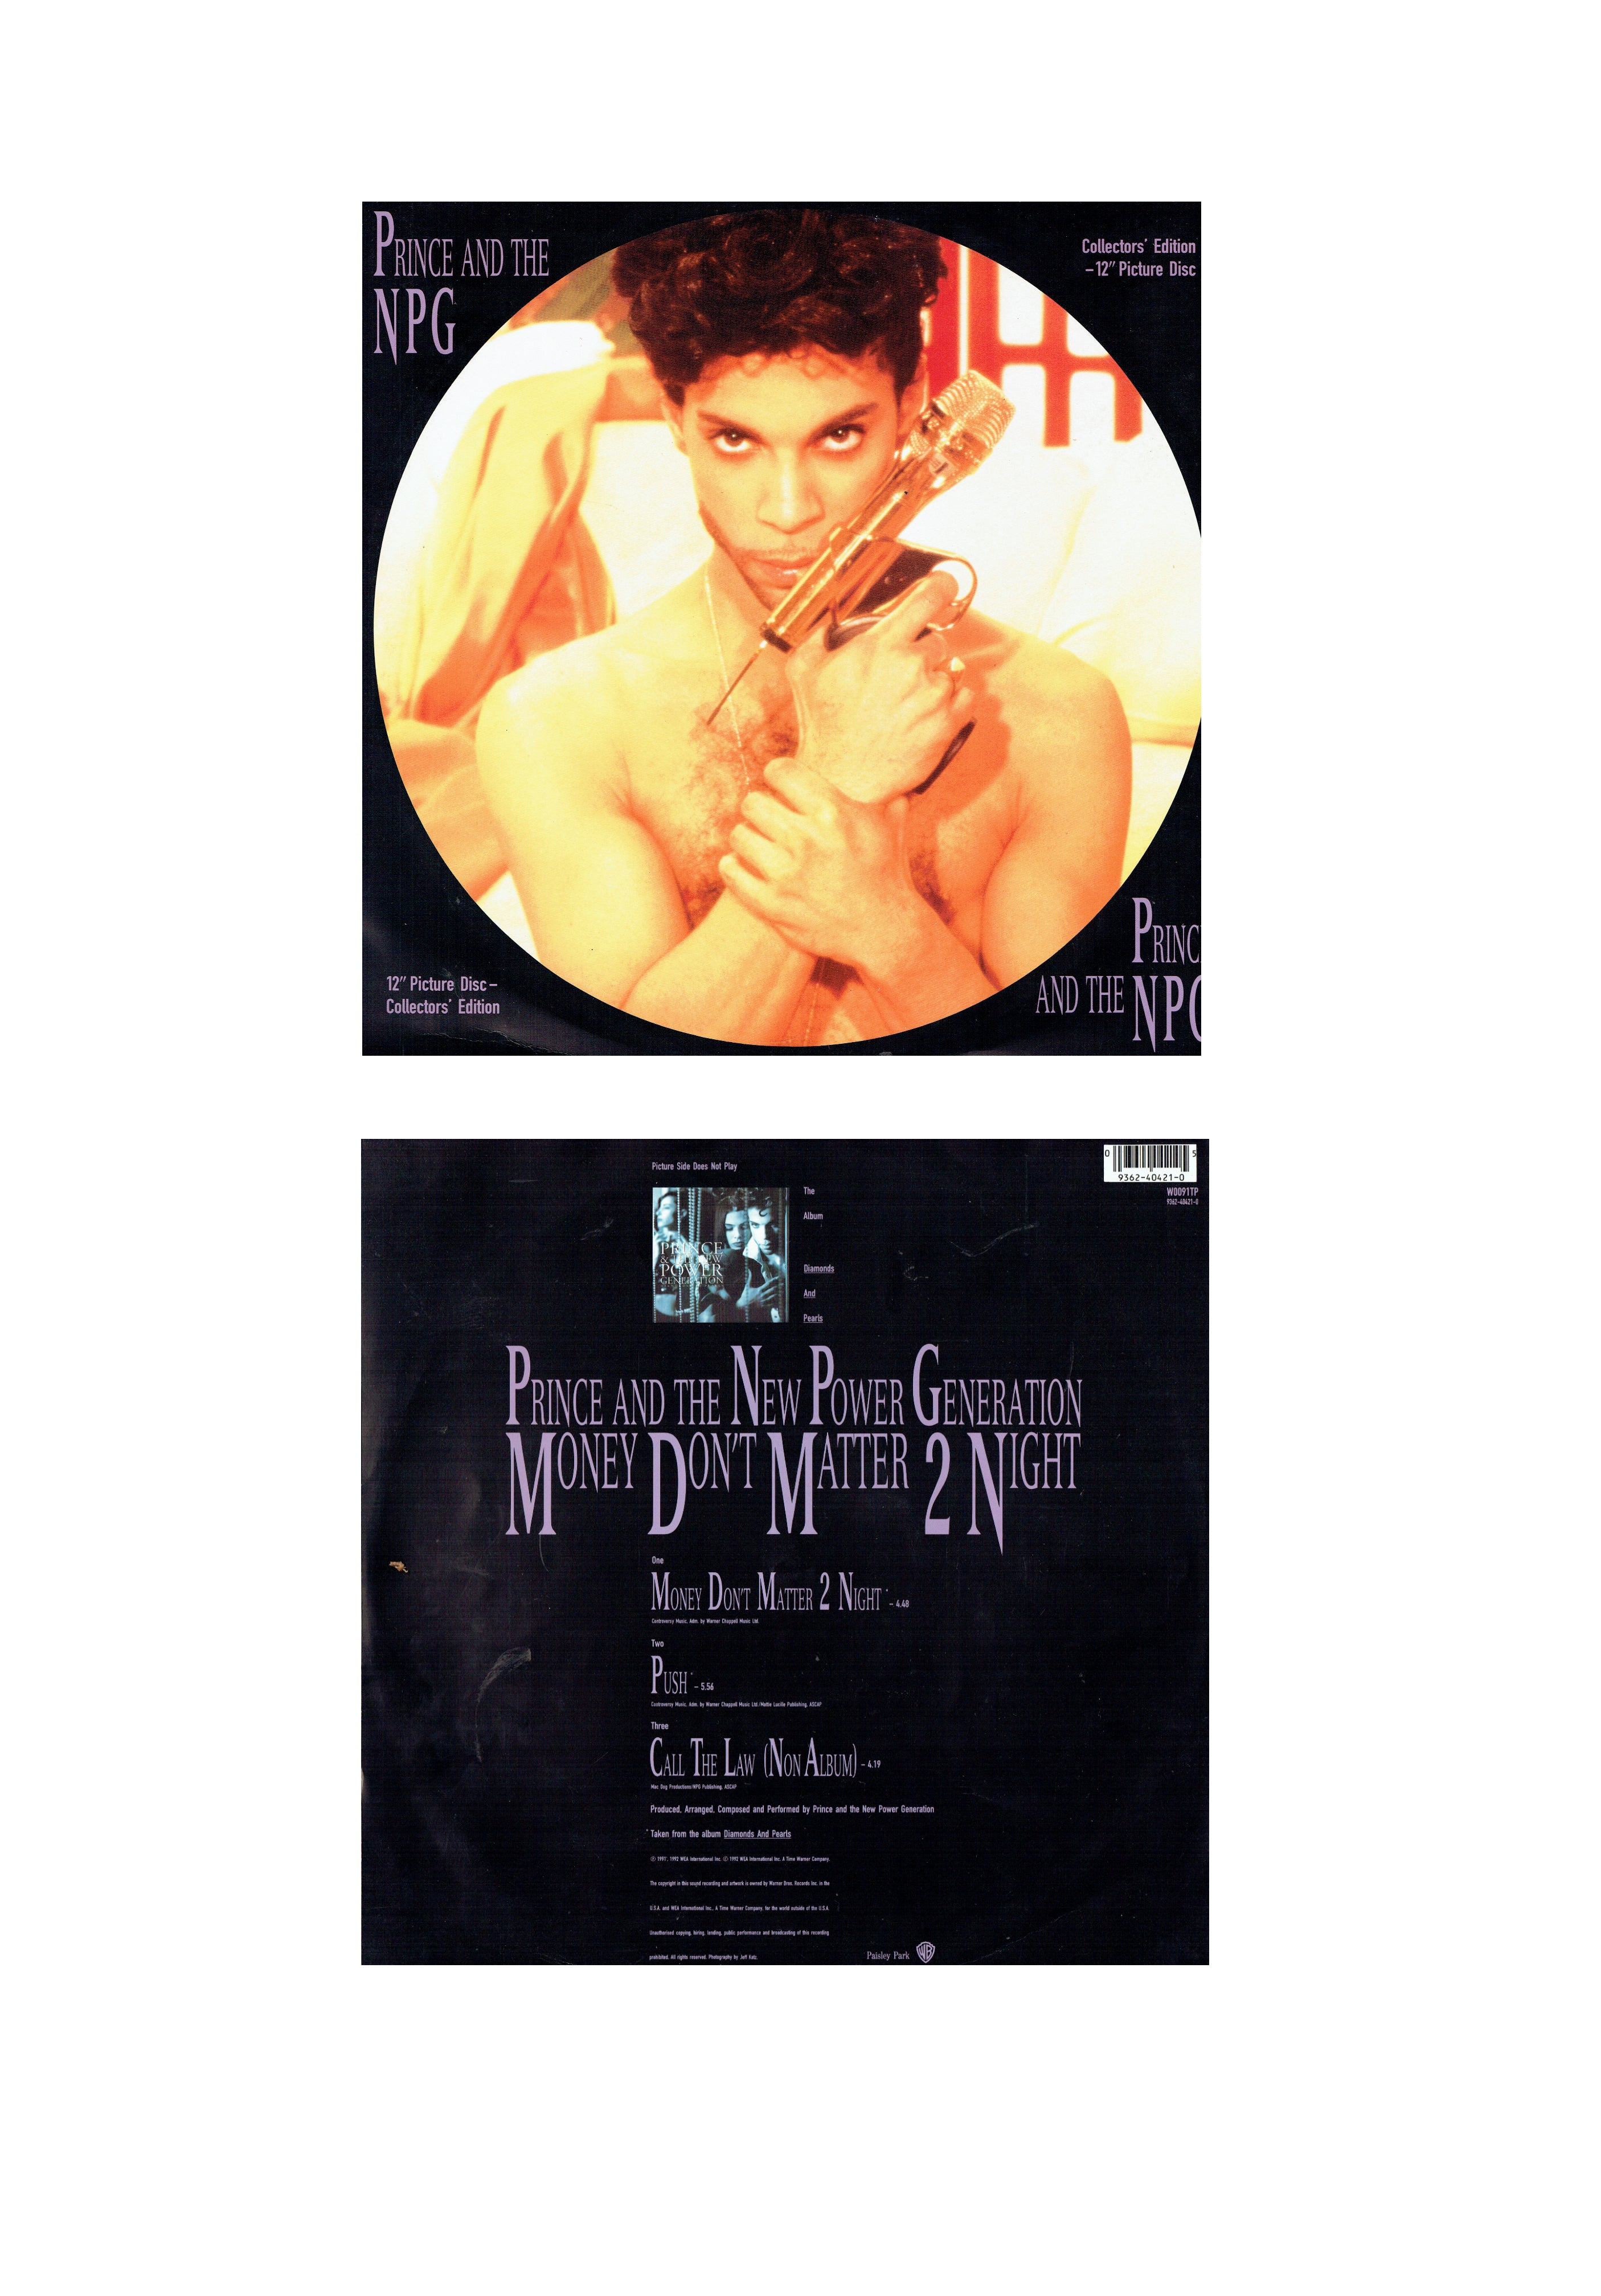 Prince & The NPG Money Don't Matter Picture Disc 12 Inch VINYL 1992 Original MINT SMS